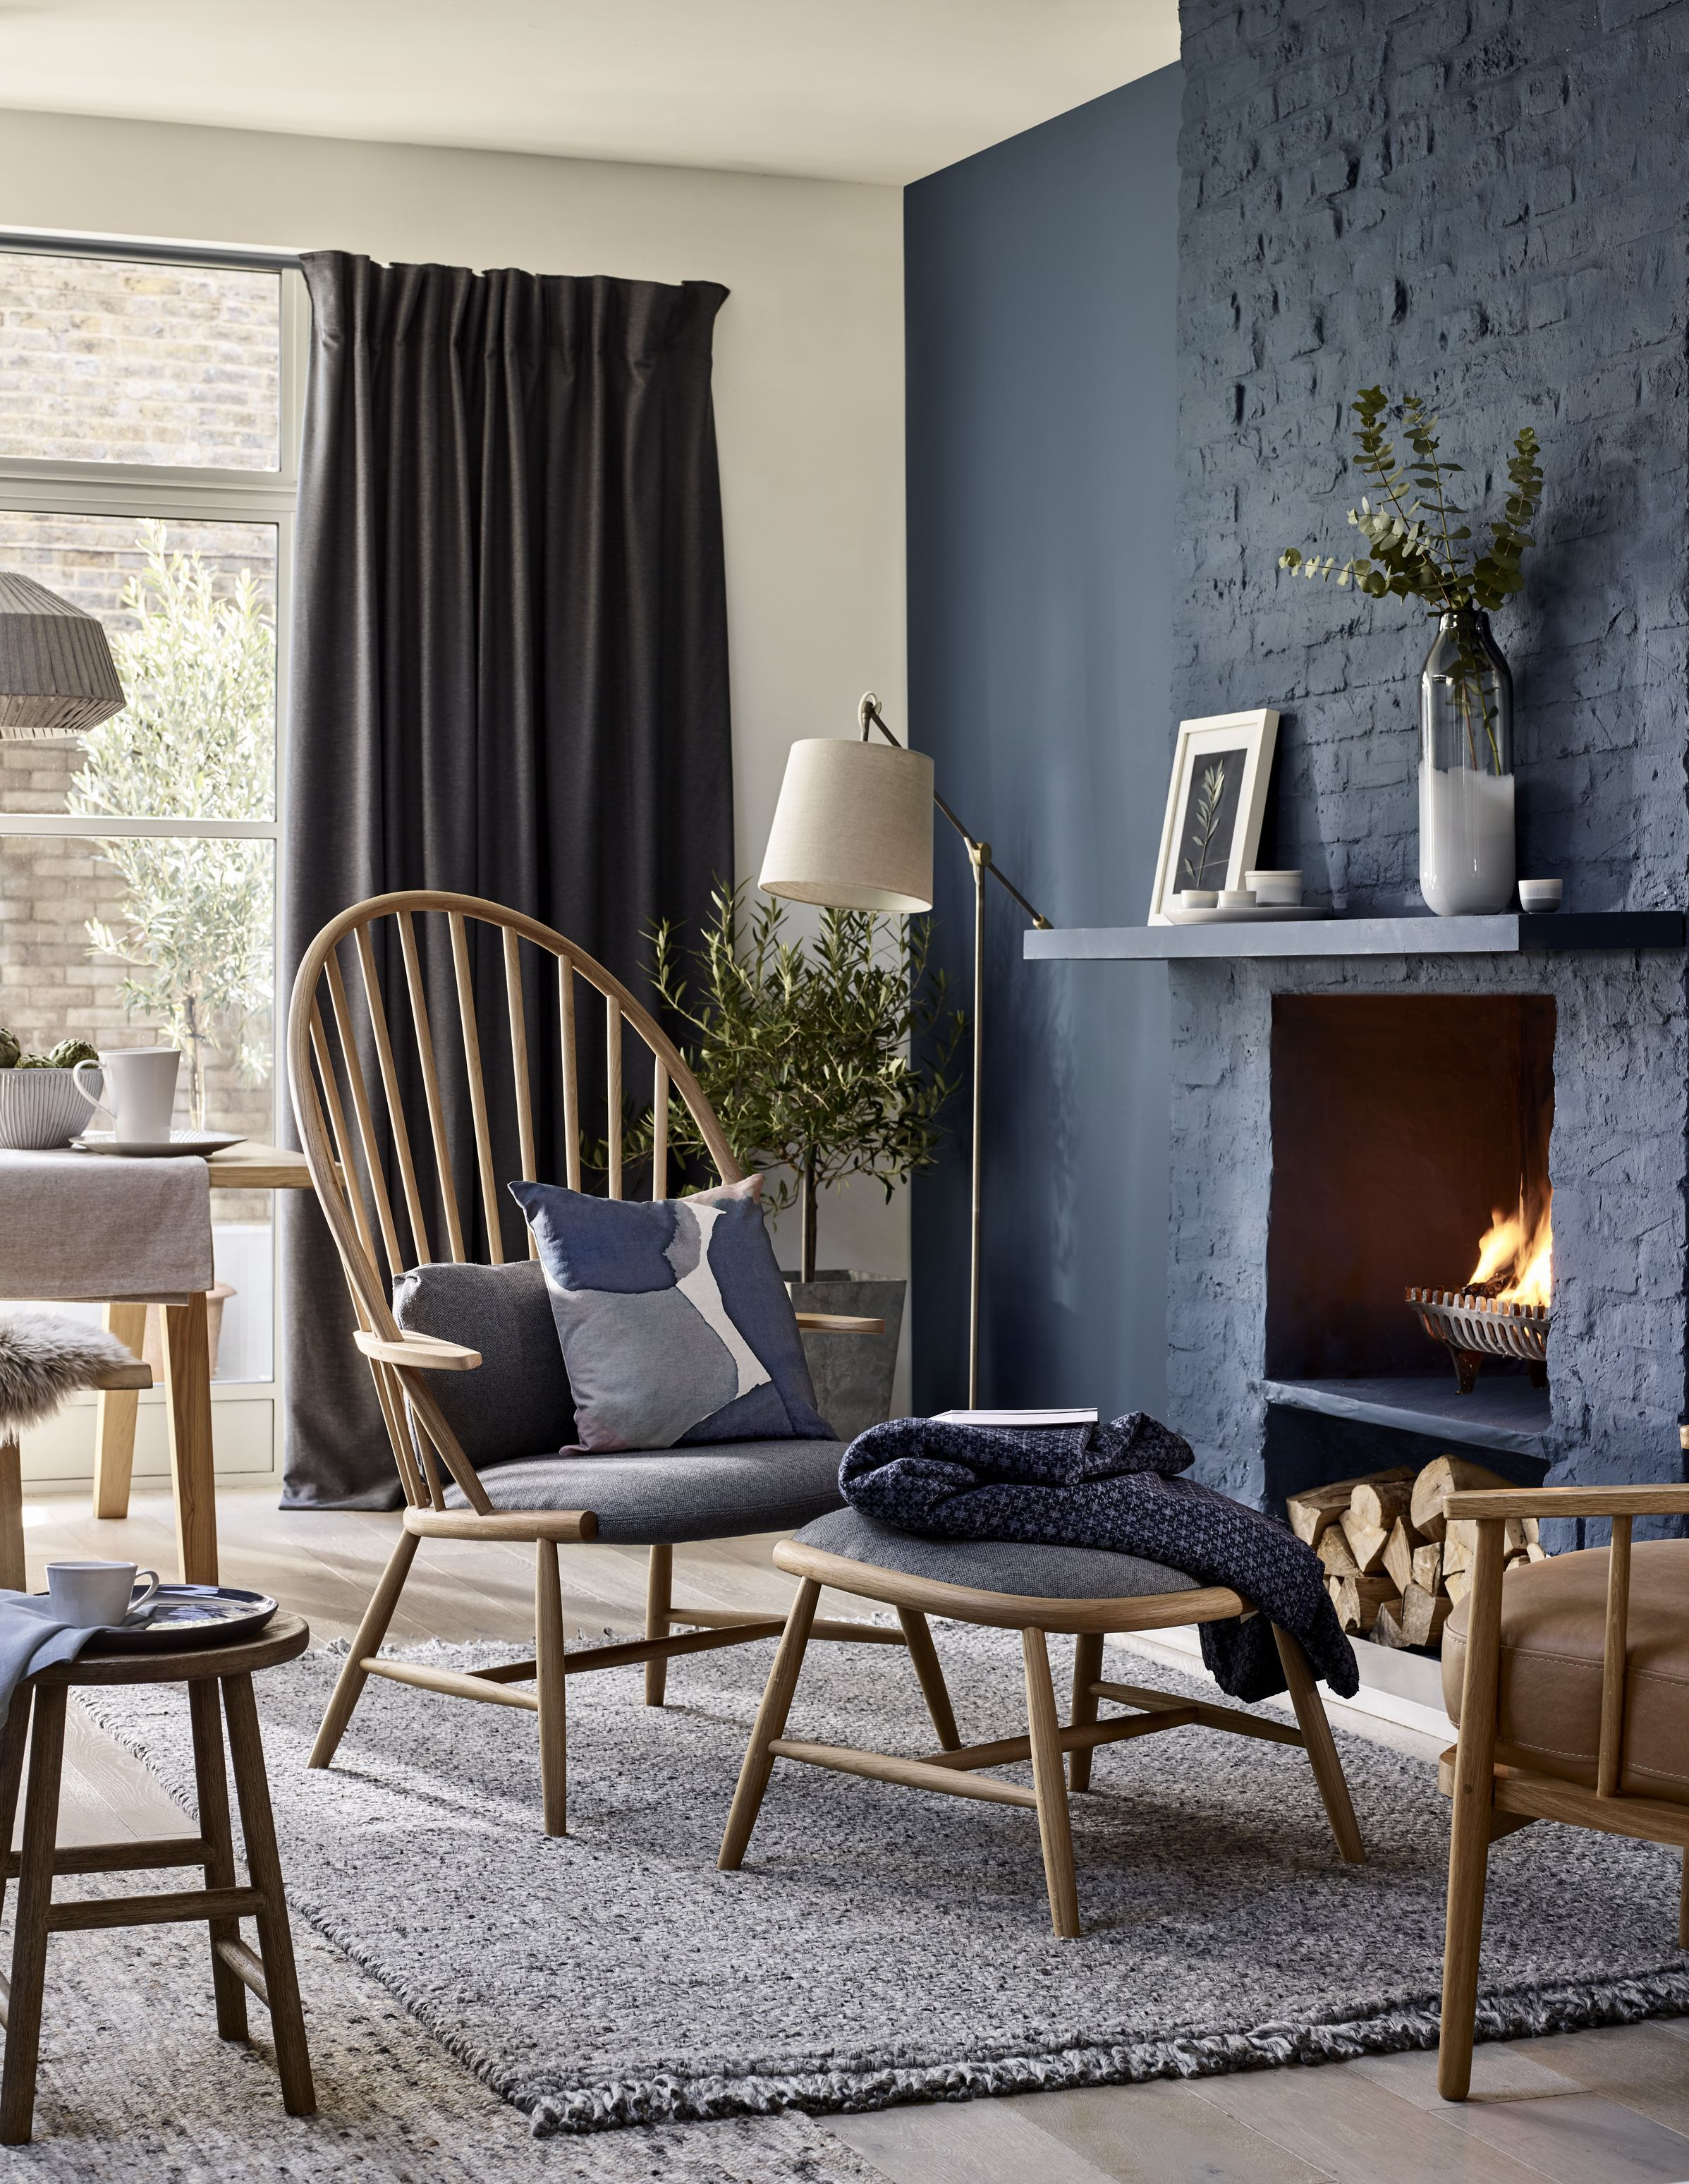 19 Dark And Atmospheric Decorating Ideas In 2020 Feature